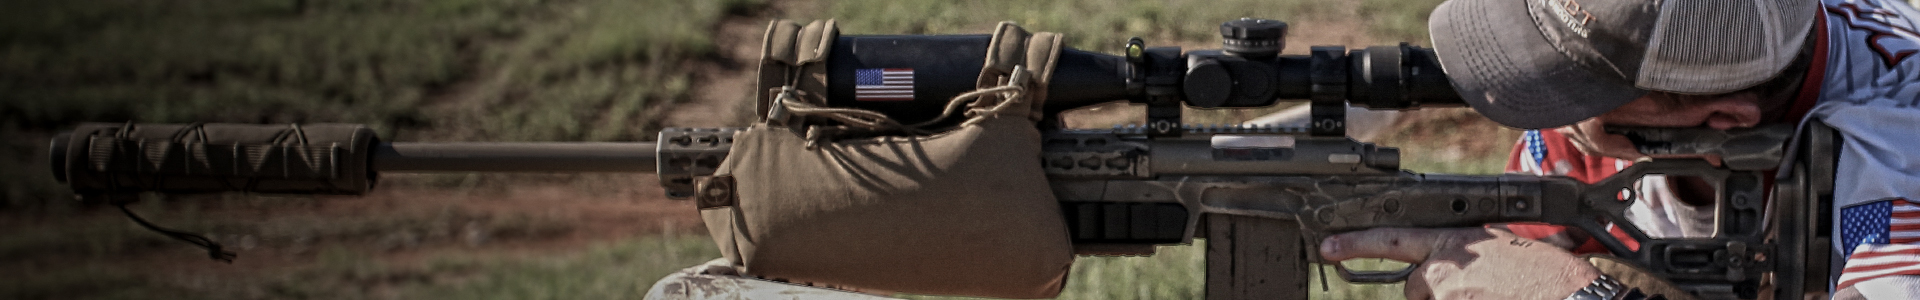 US Flag on Boltgun